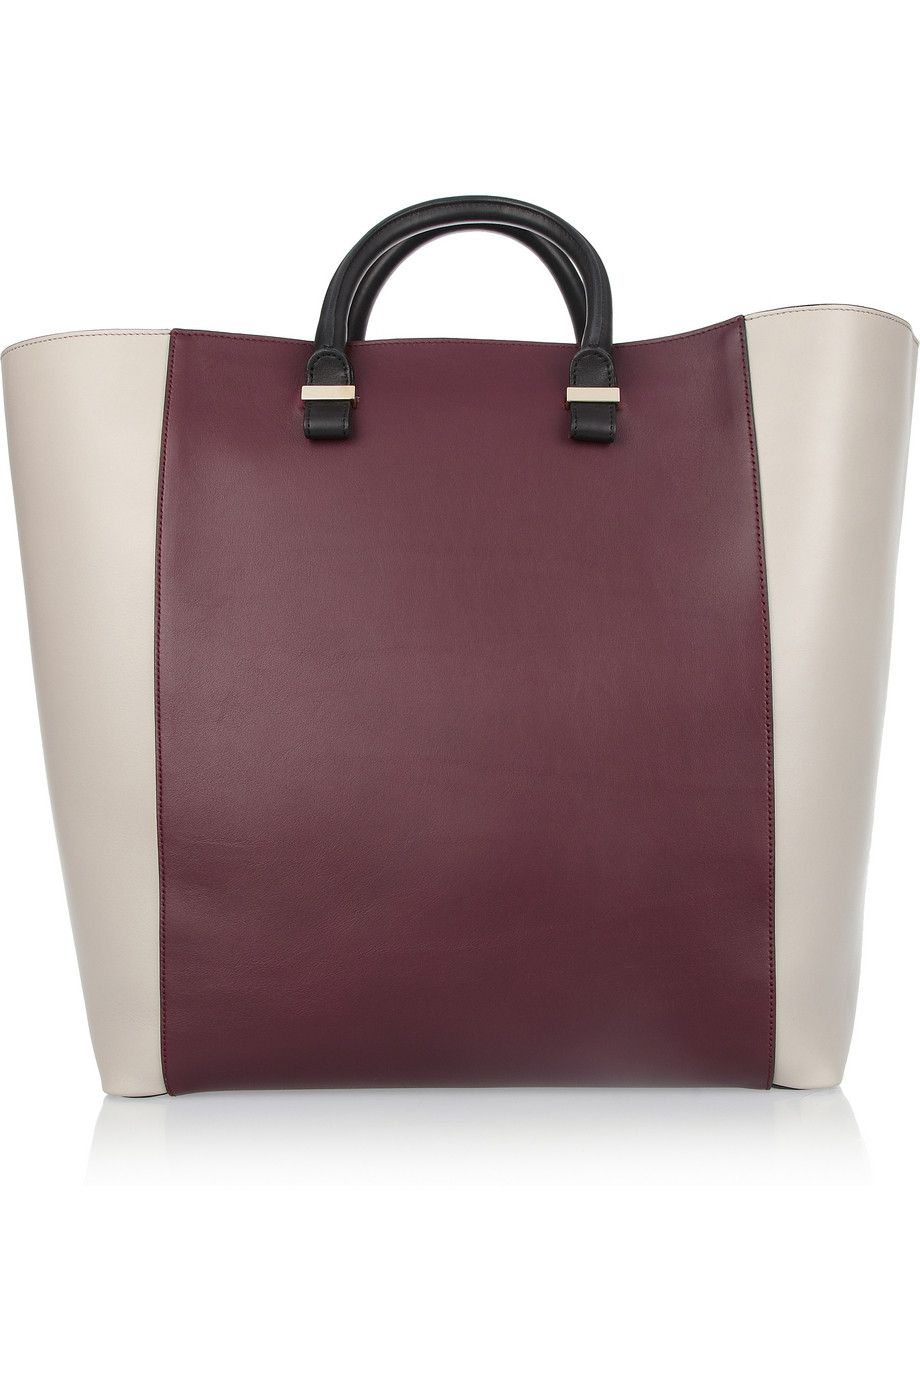 VICTORIA BECKHAM Tri-tone leather tote